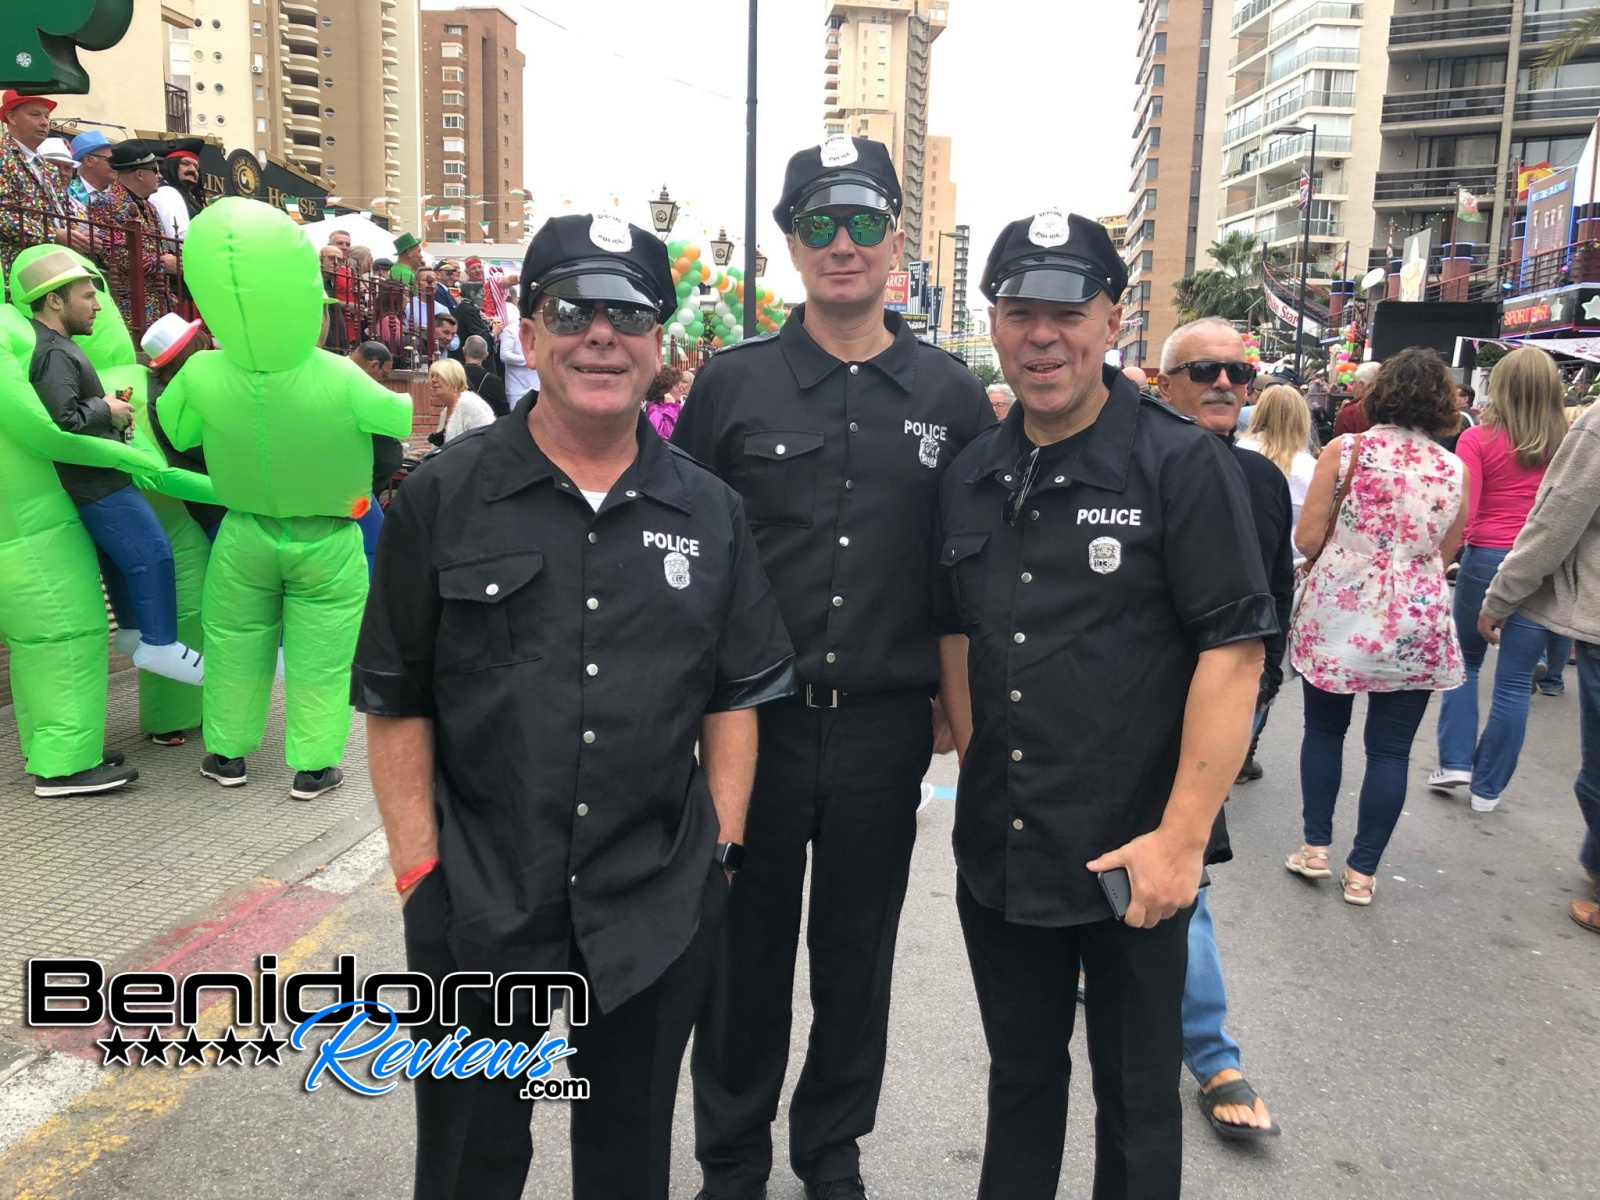 Benidorm-Fiestas-2019-Fancy-Dress-64